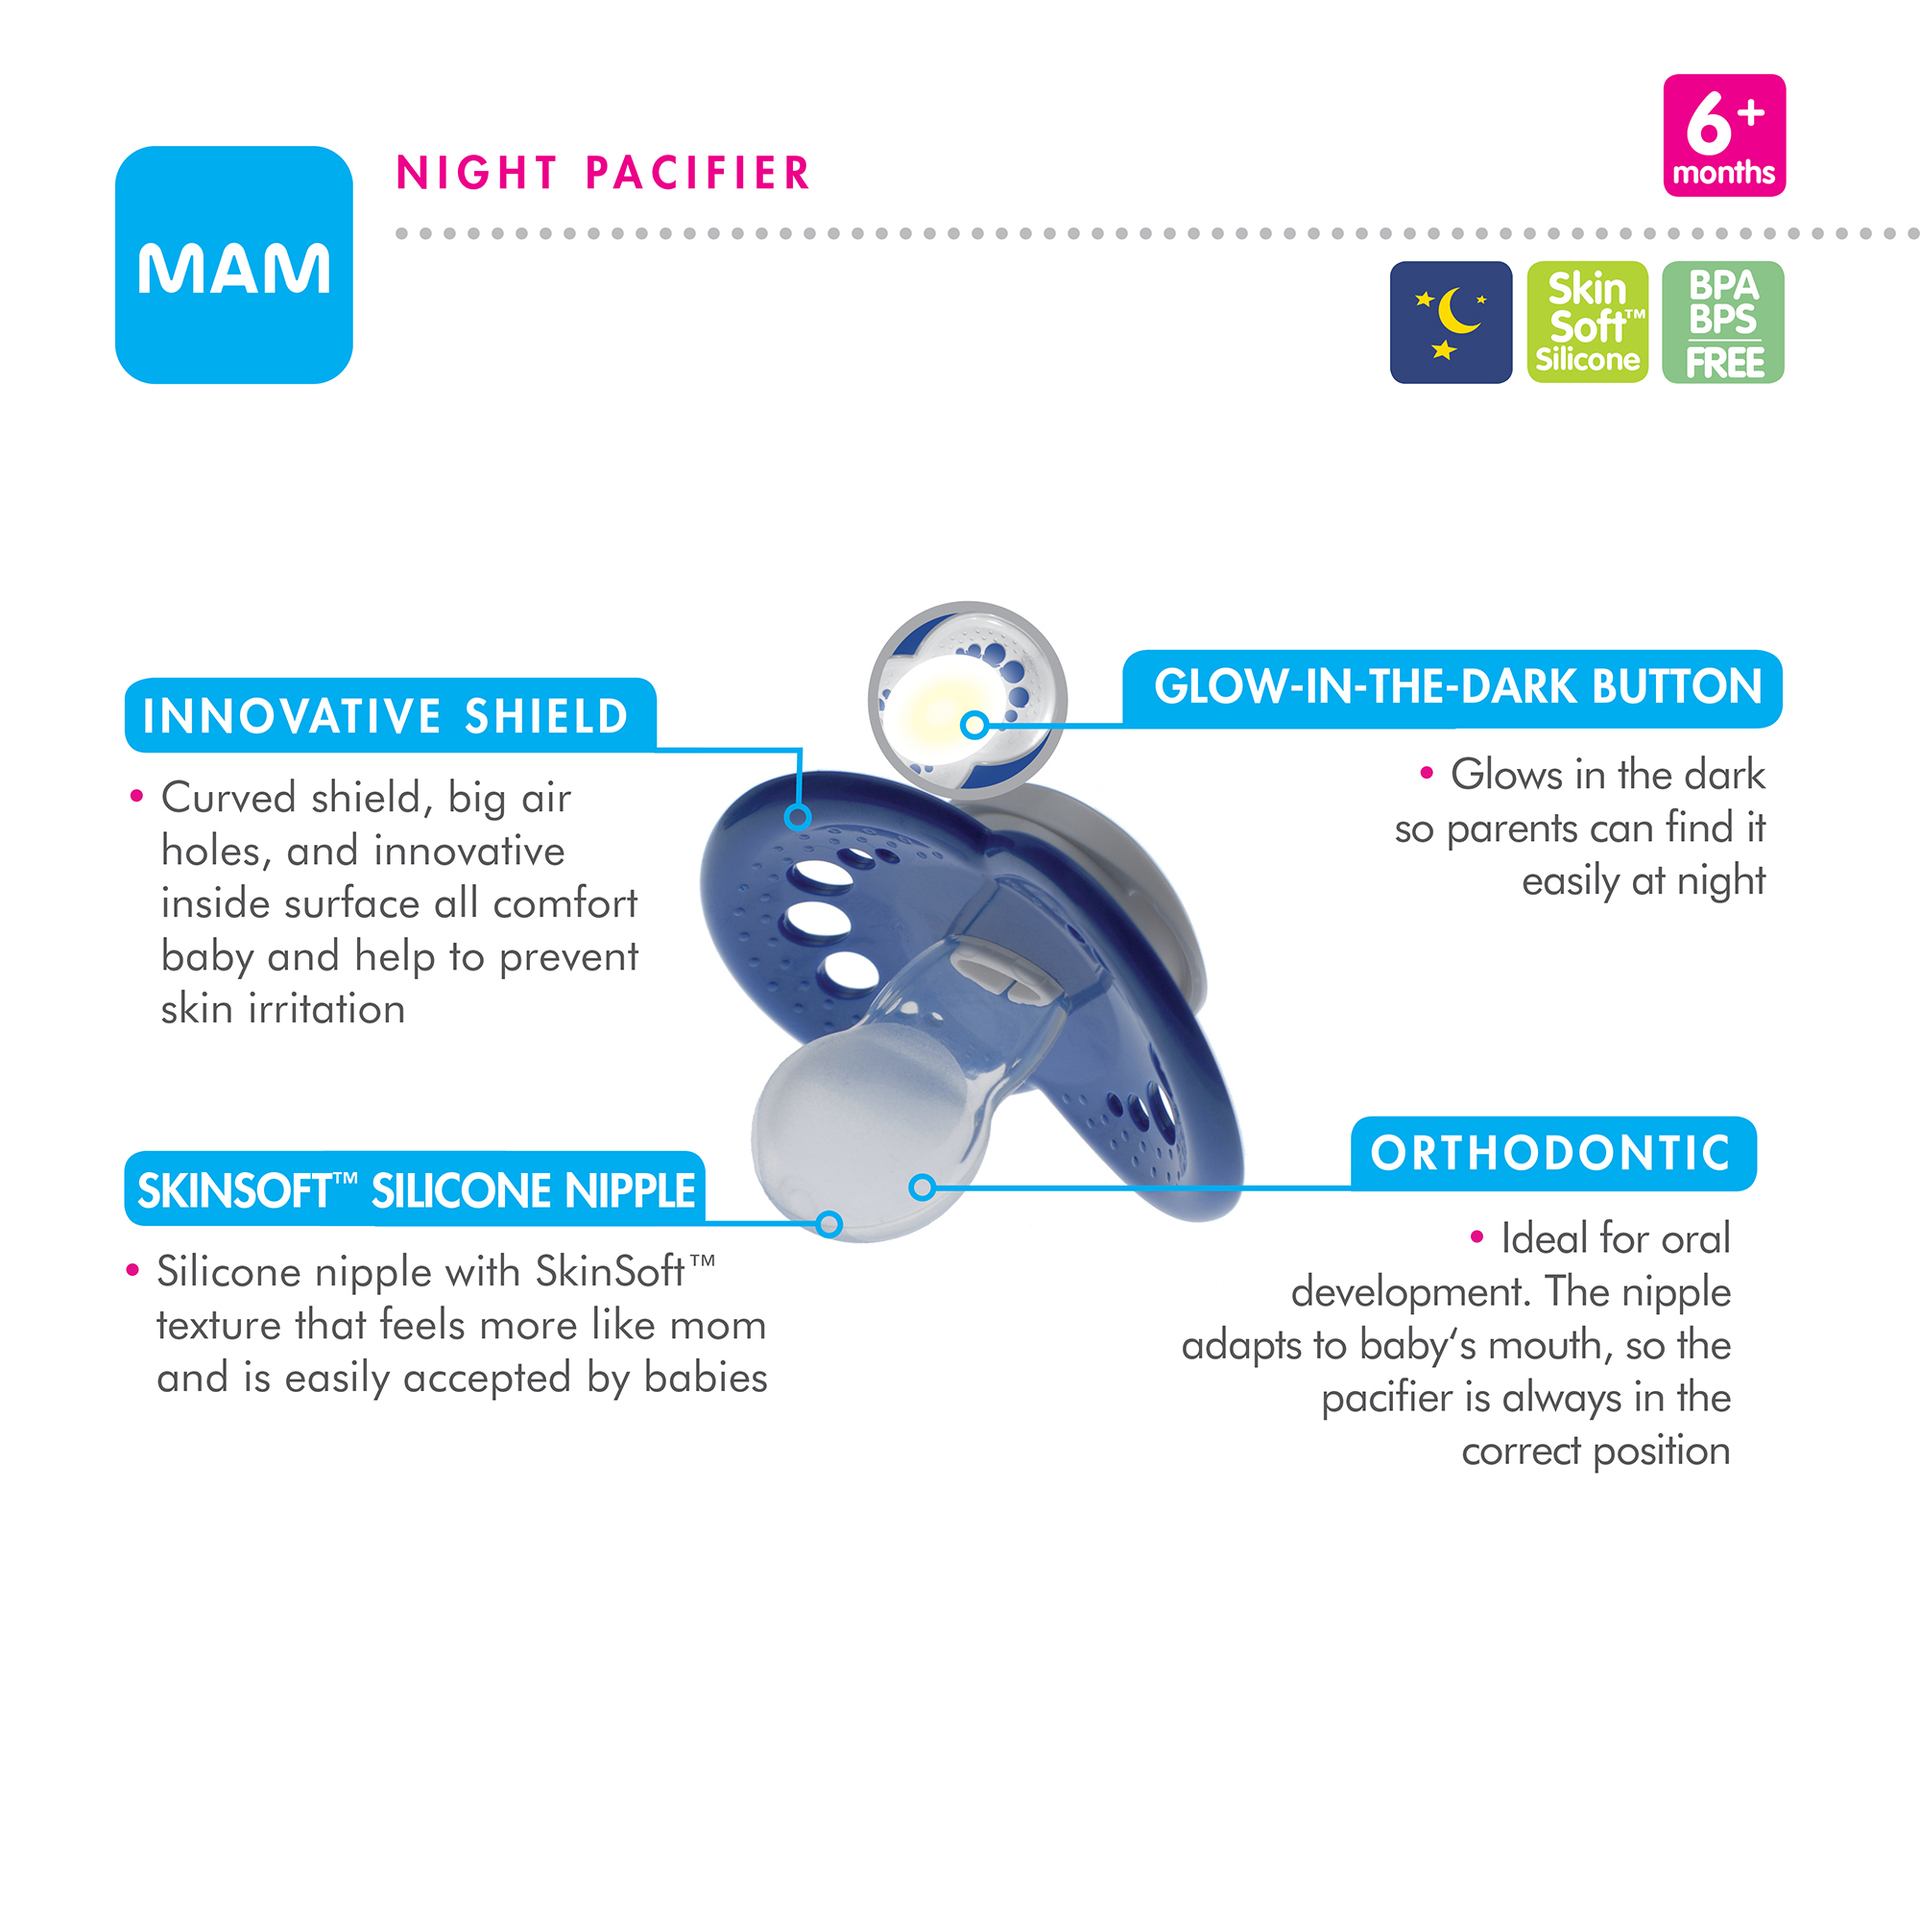 image relating to Mam Printable Coupon called MAM Pacifier, Orthodontic, 6+ Weeks 3 pacifiers